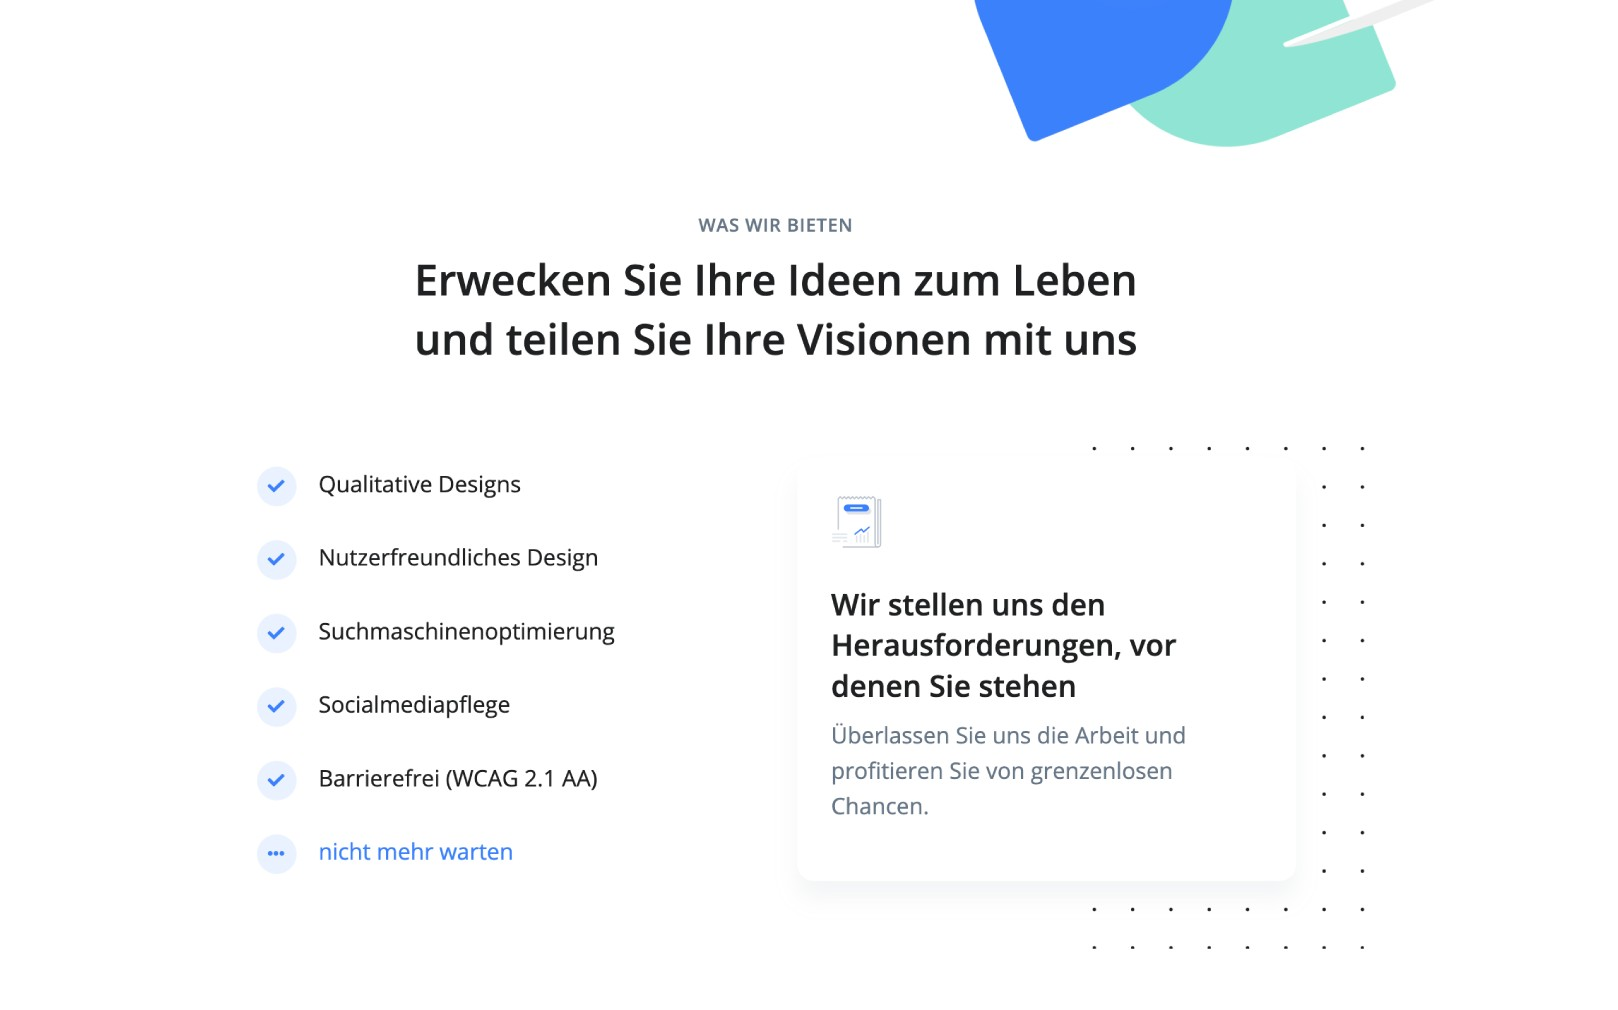 Ipad (Horizontal) mit responsivem Design